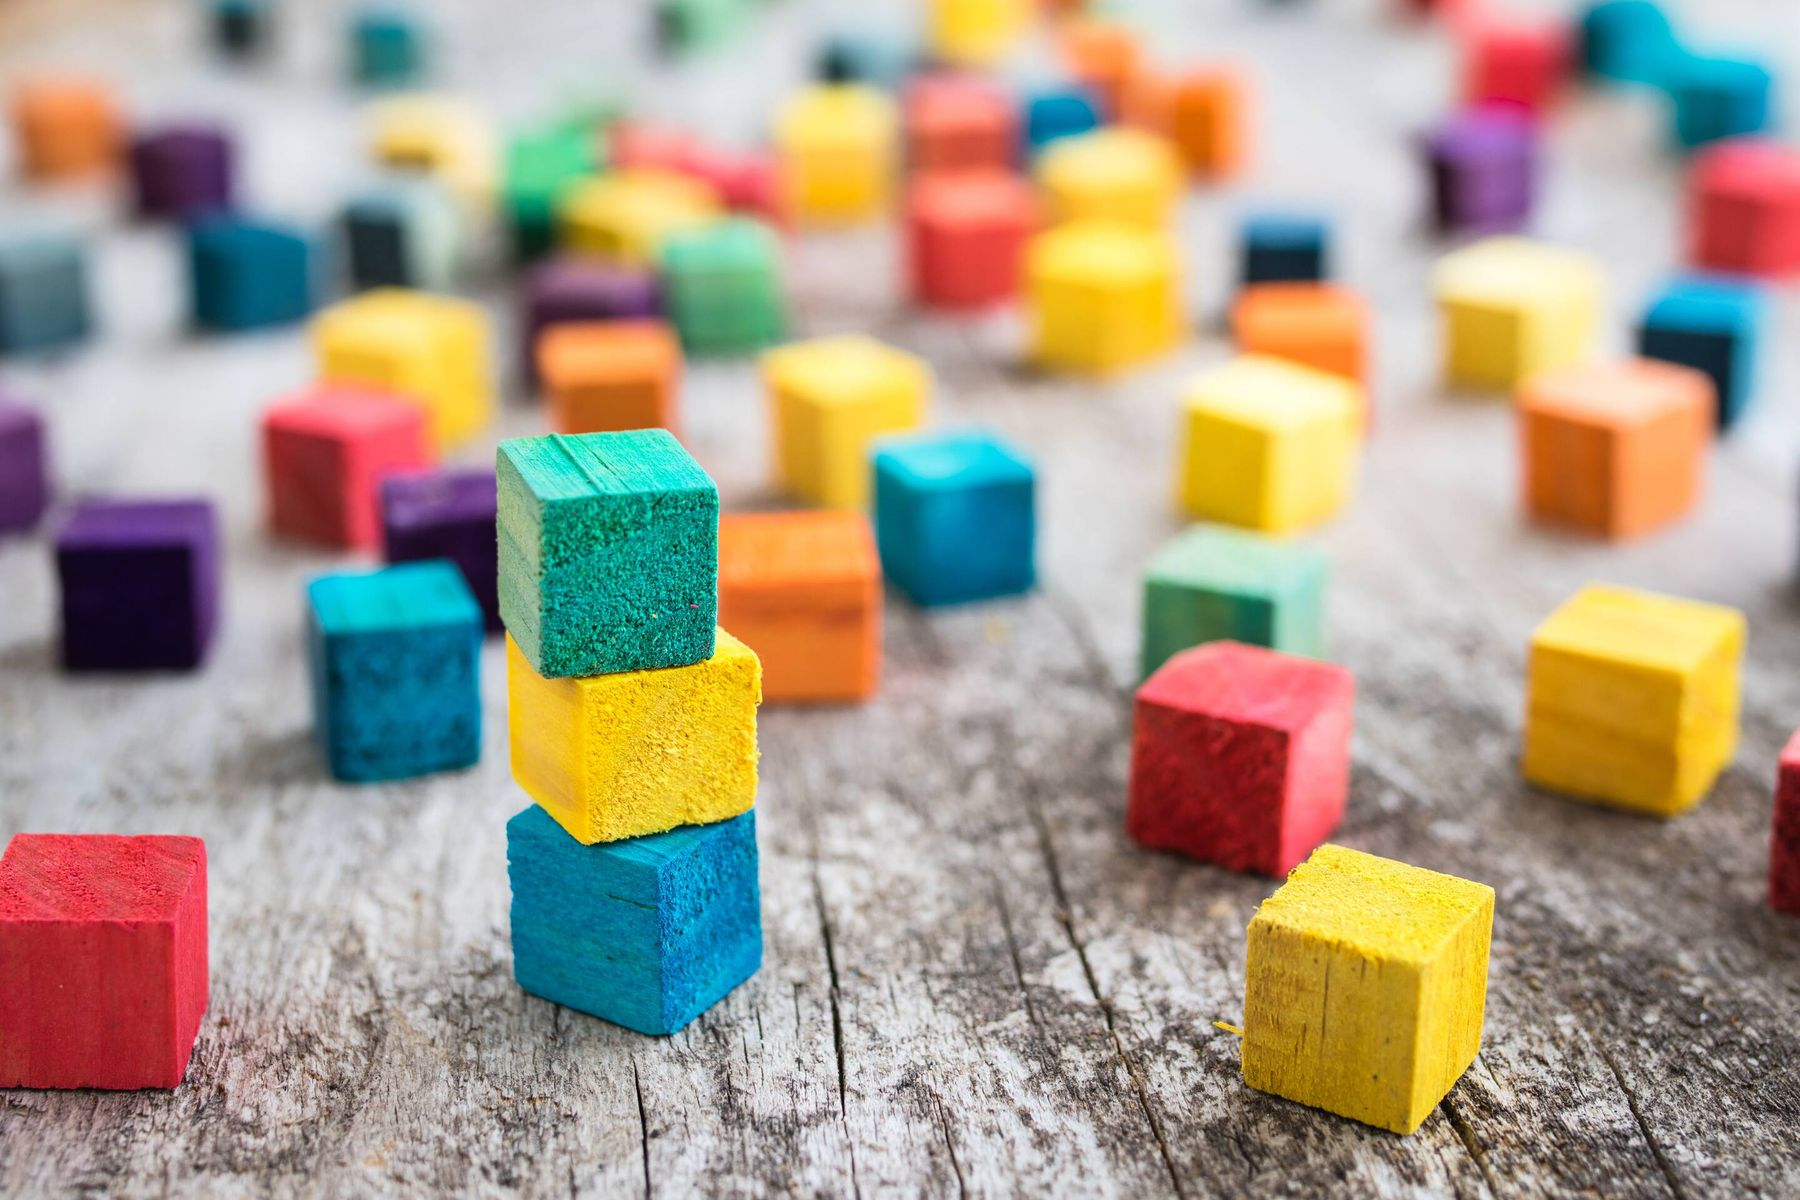 The Best Way to Clean Your Child's Building Blocks' Set